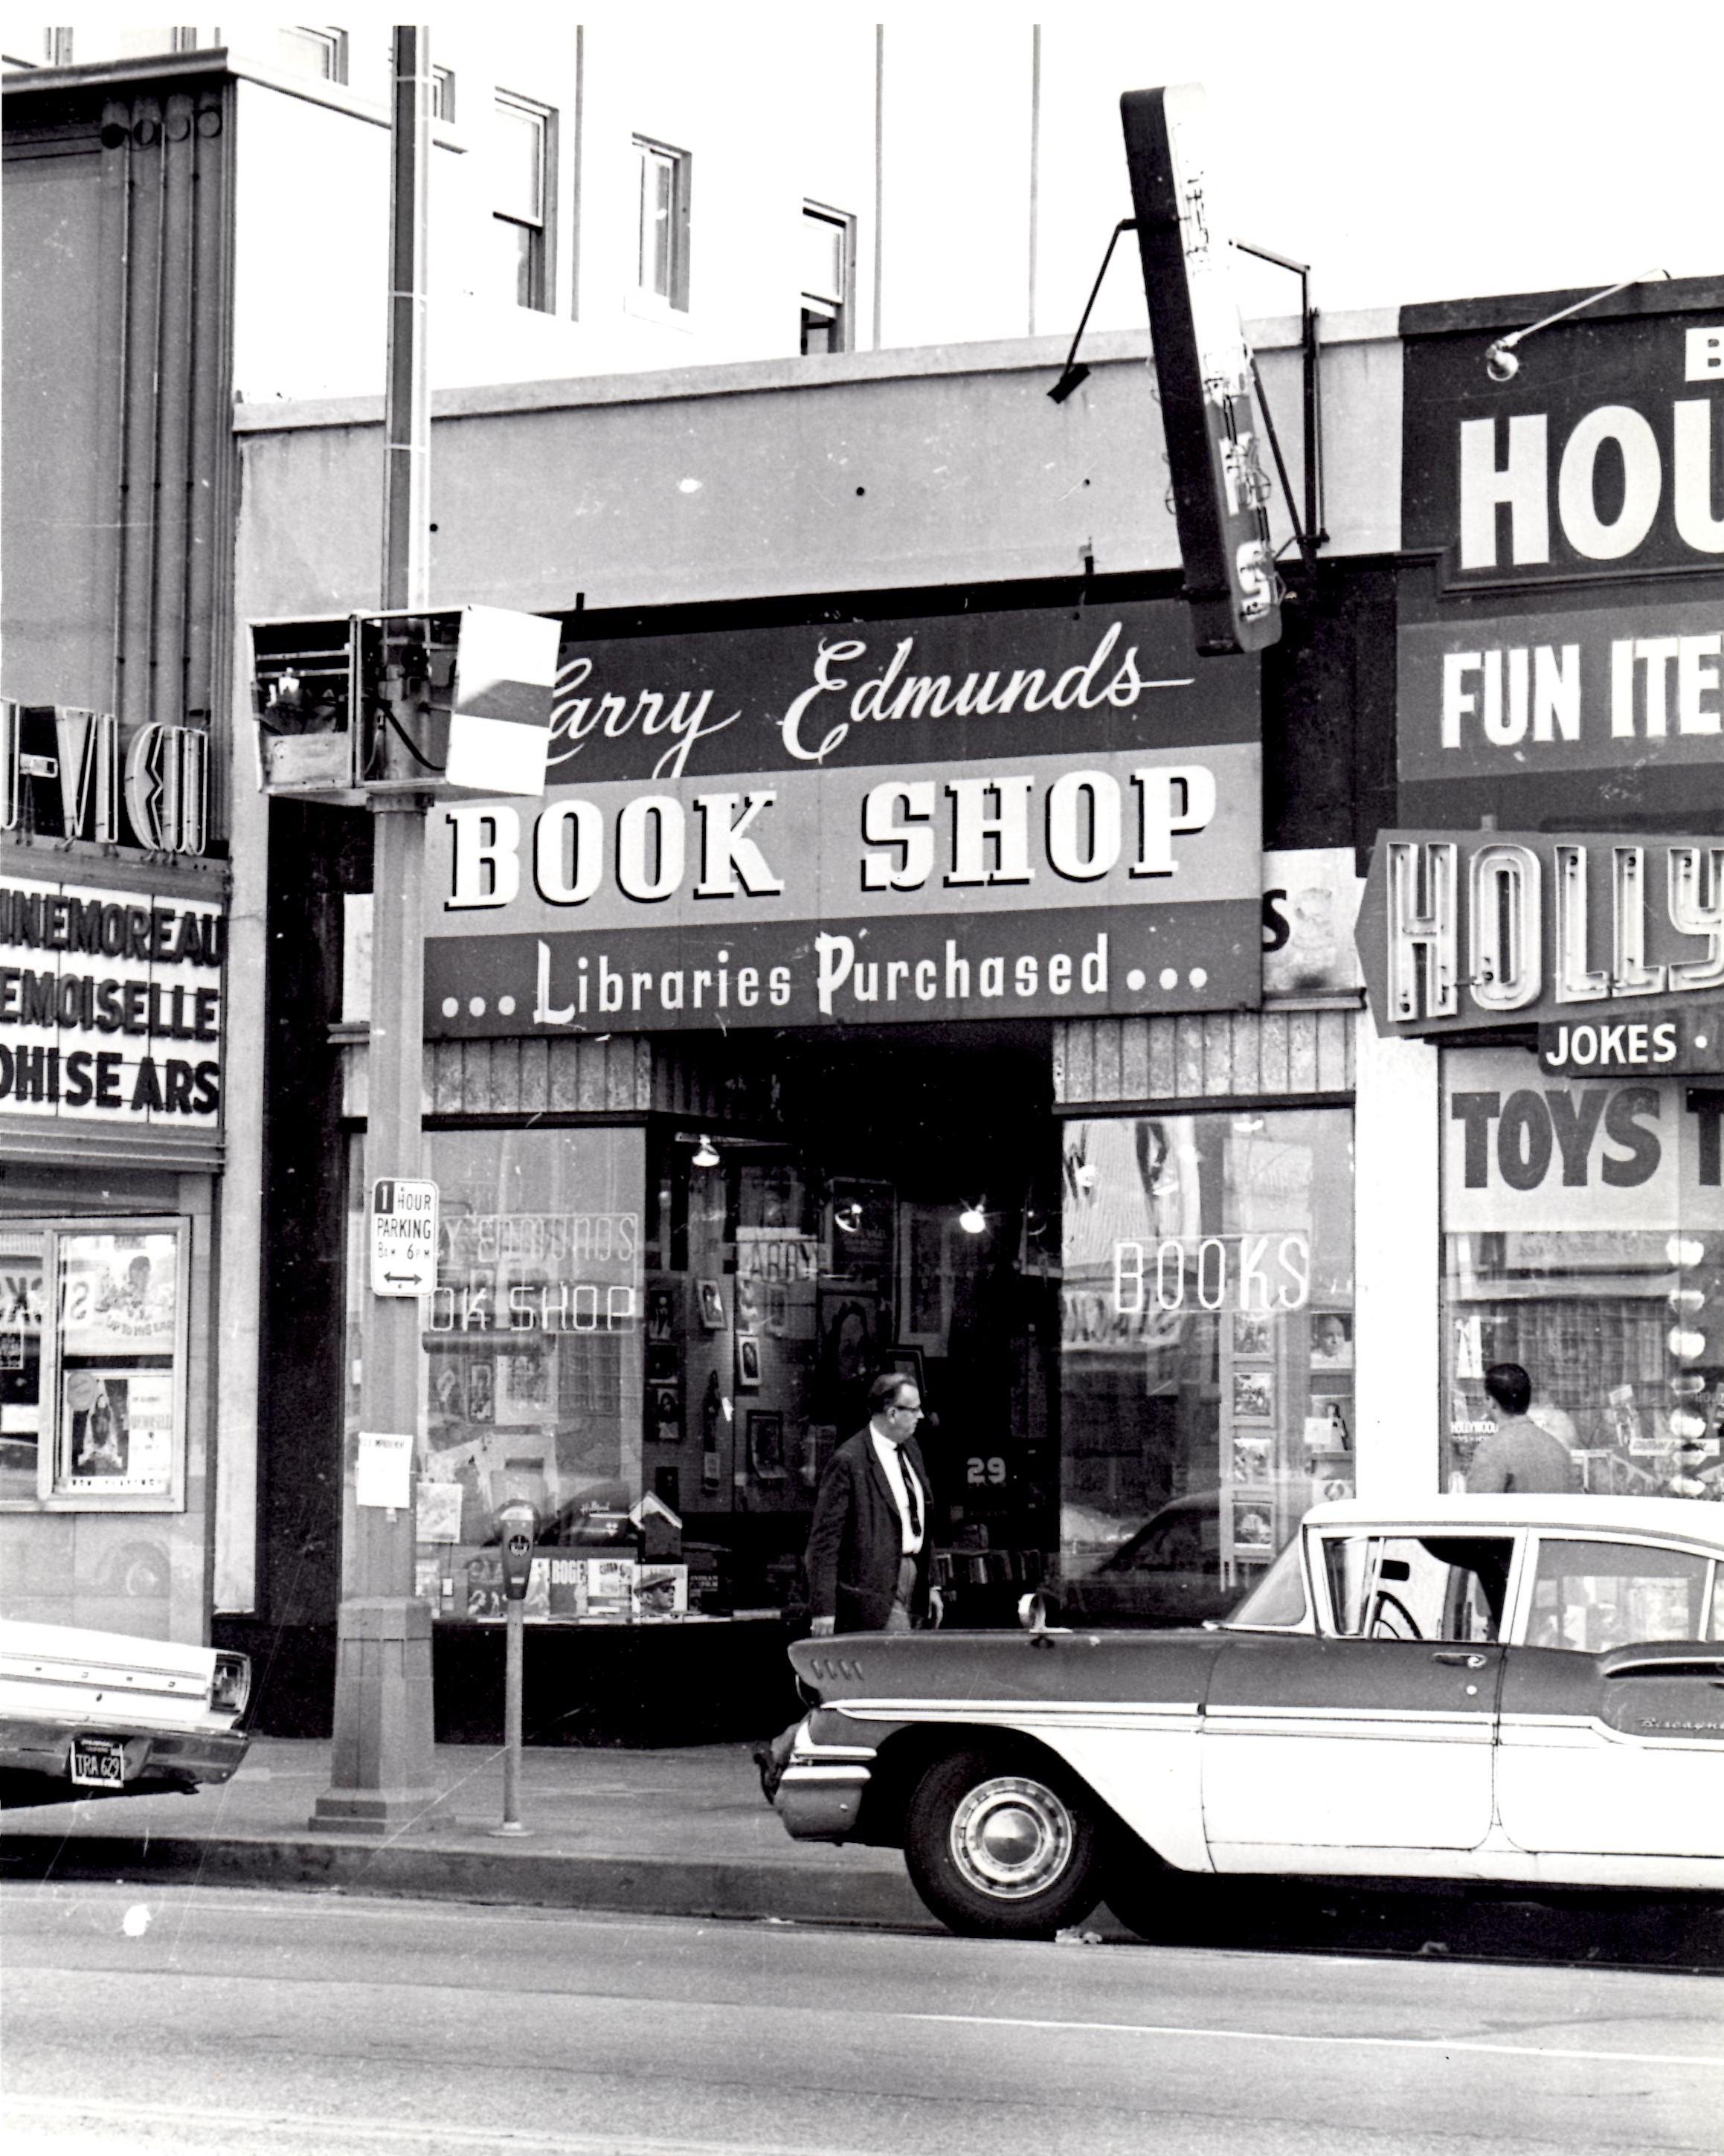 Larry Edmunds Book Store. Photo by Wayne Braby